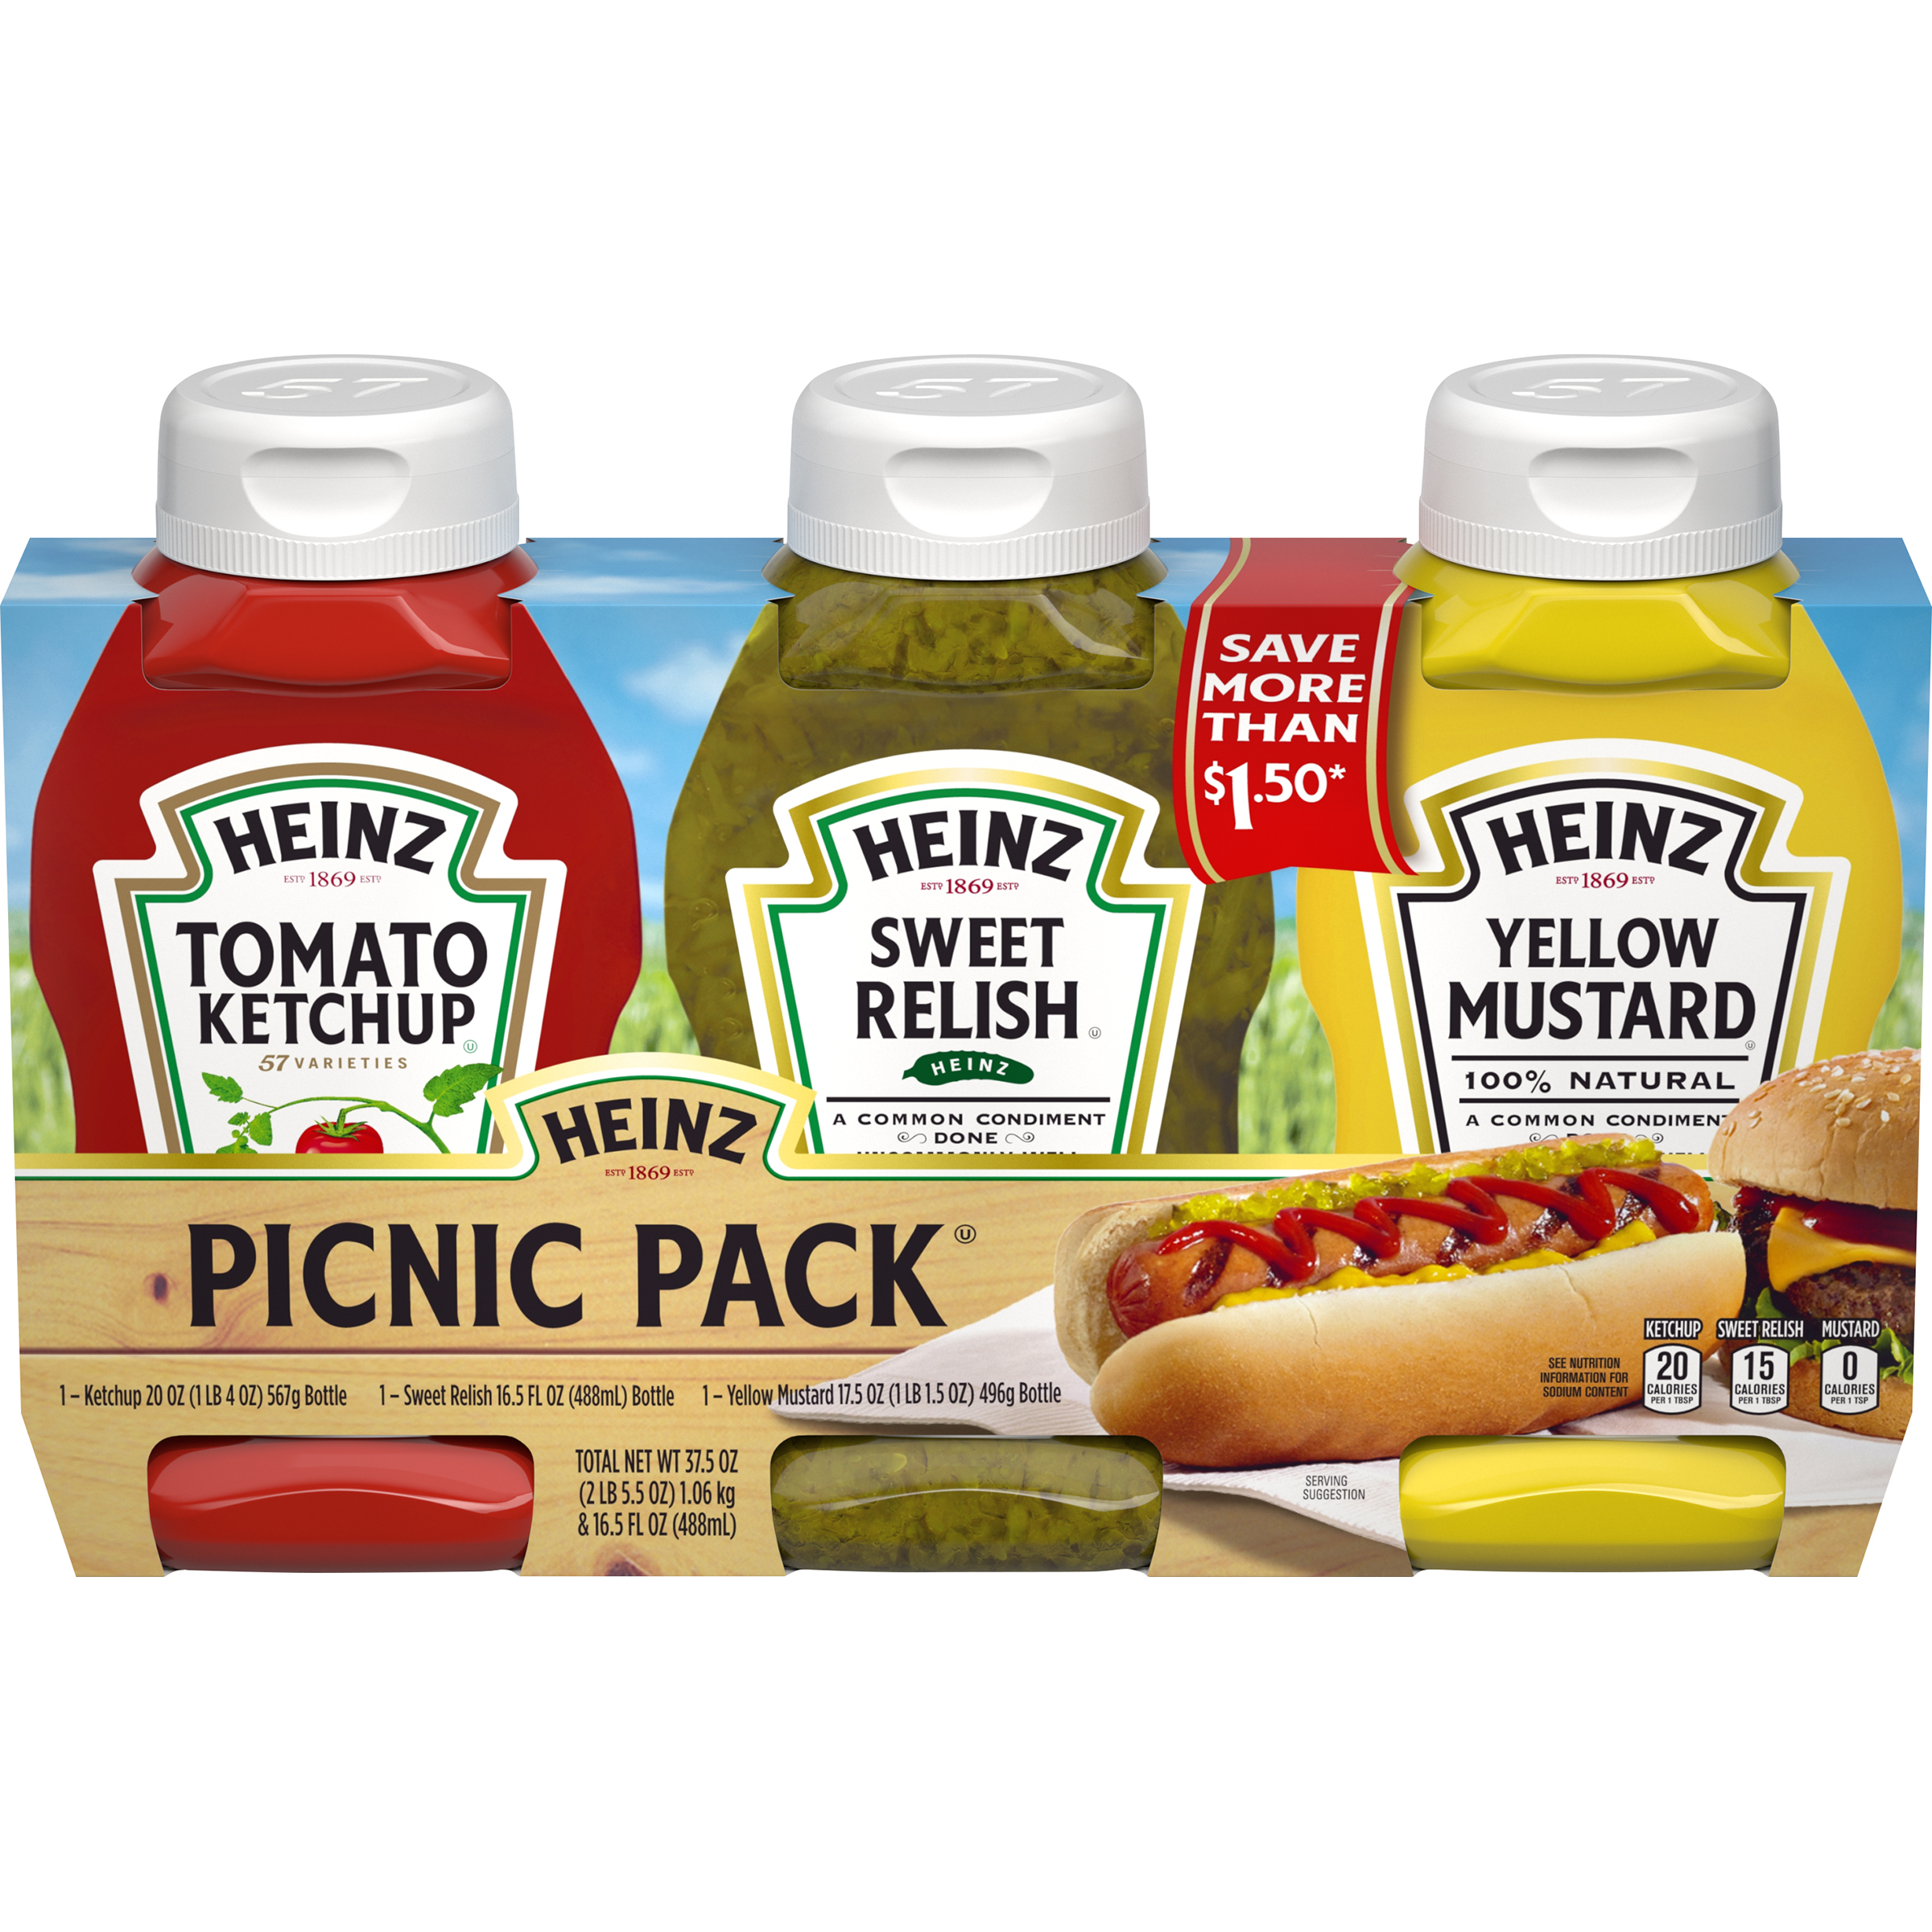 Heinz Ketchup, Sweet Relish & Yellow Mustard Variety Pack